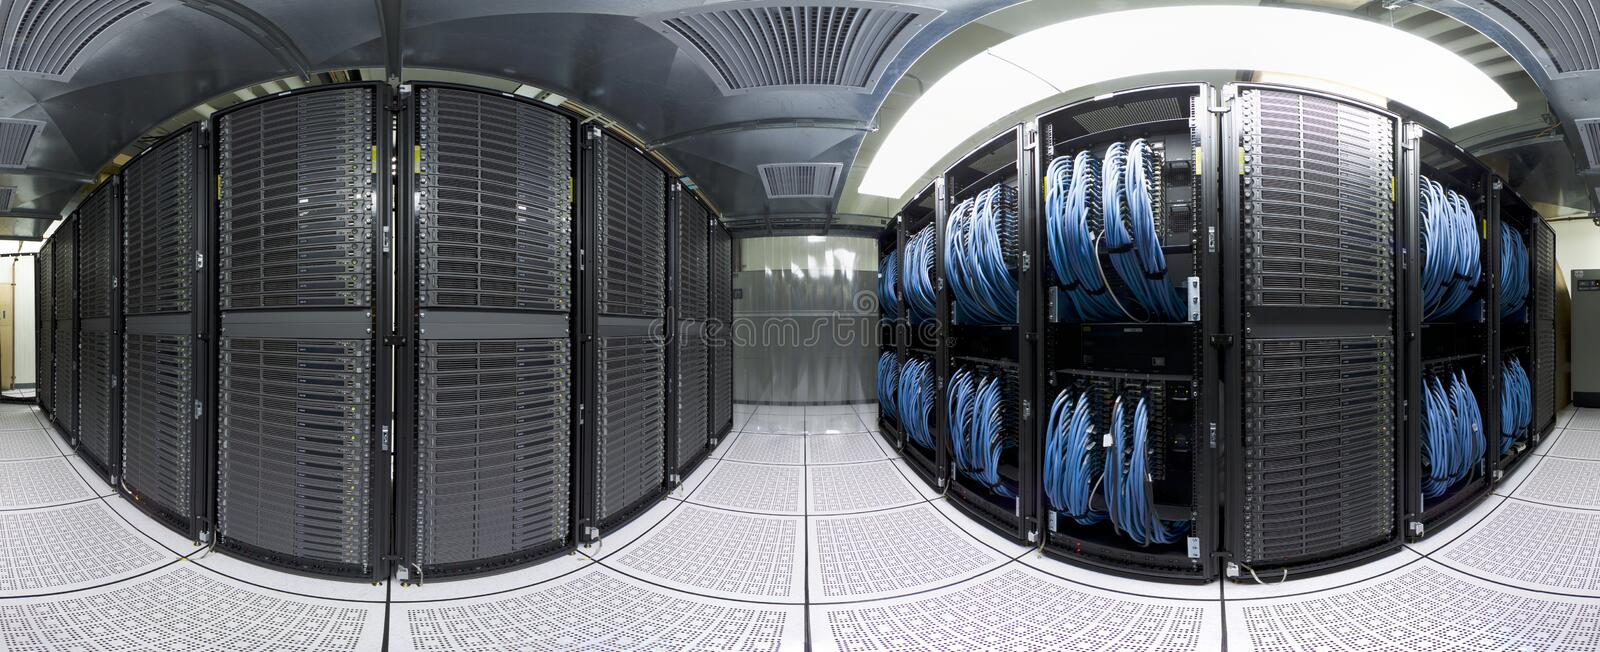 Datacenter panorama. An unusual view of a supercomputer (datacenter) - full 360 degrees panorama. Two racks filled with servers and fast interconnect switches royalty free stock image